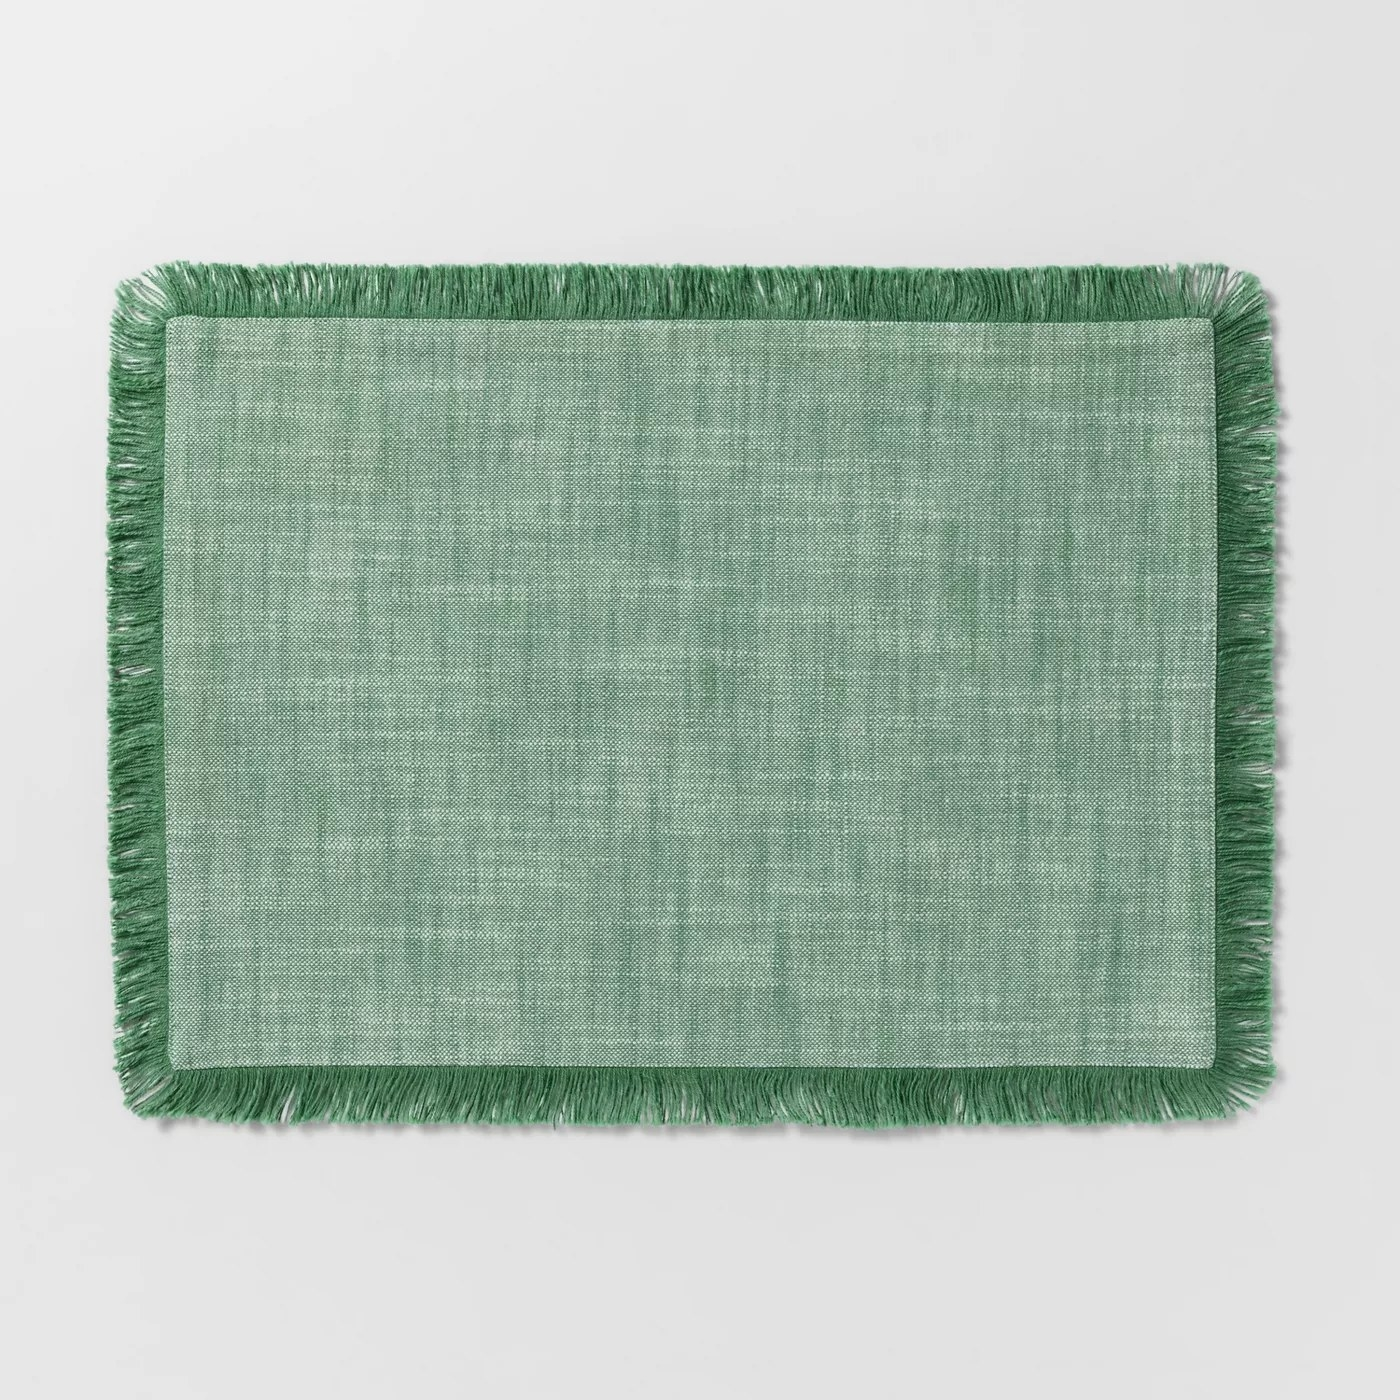 The green chambray placemat with a fringed edge